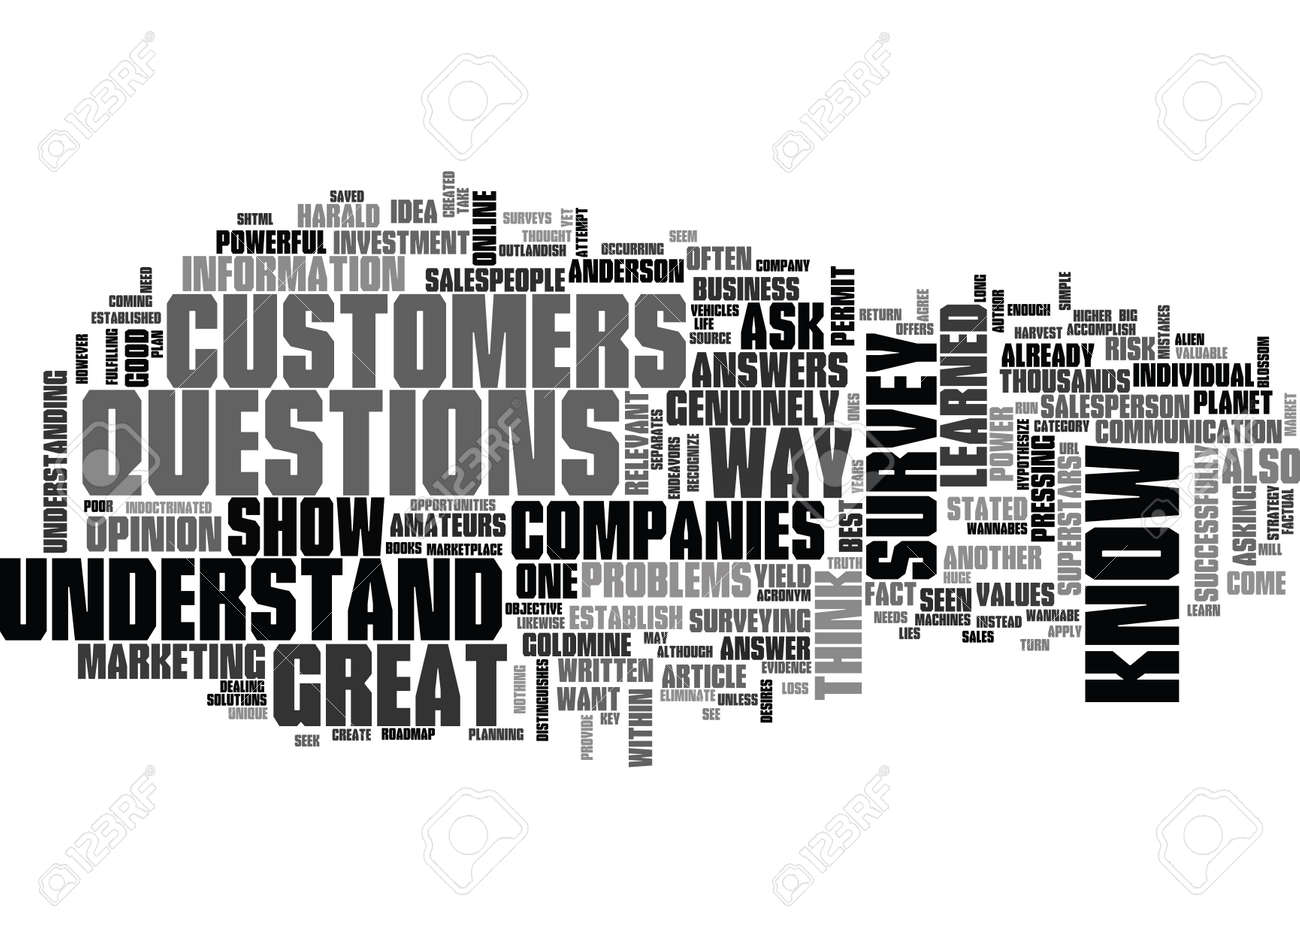 why great companies survey martian logic text word cloud concept stock  vector - 79581076